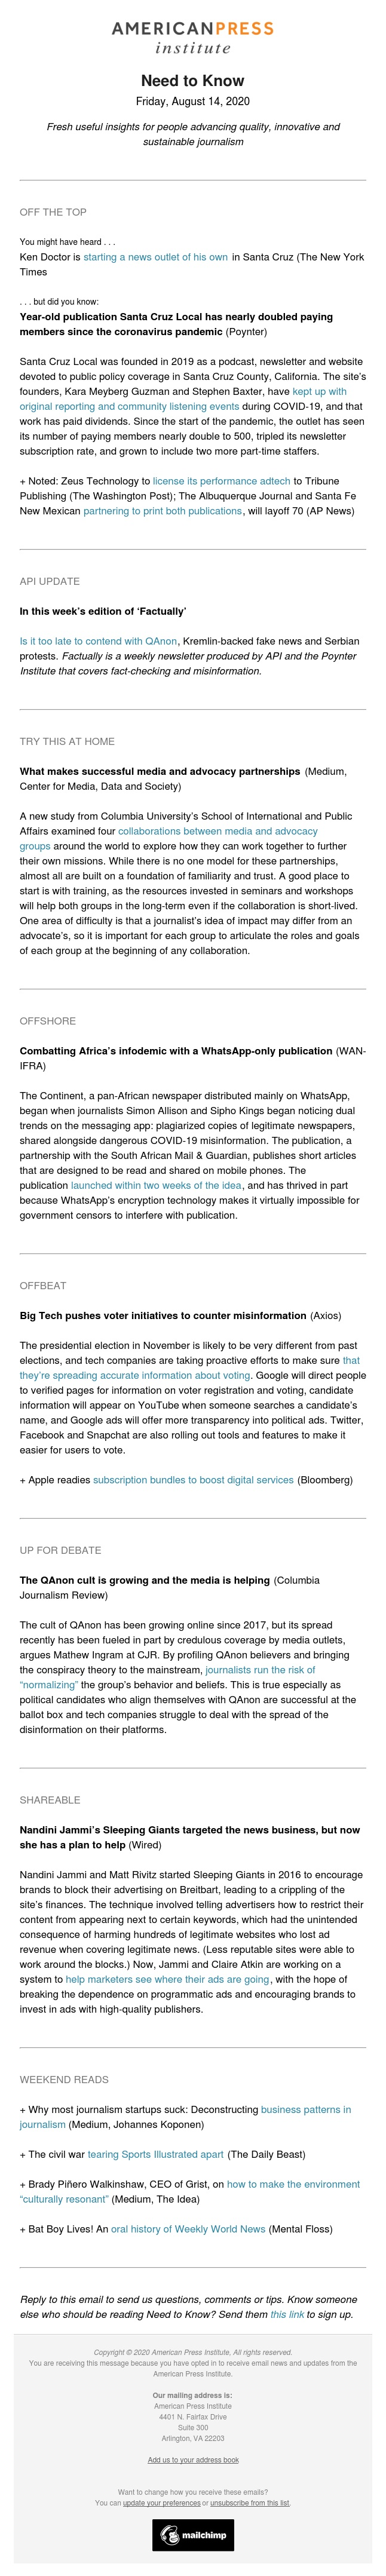 Need to Know: How journalism startups fail, how to handle QAnon conspiracy theorists, and can journalists partner with advocacy groups